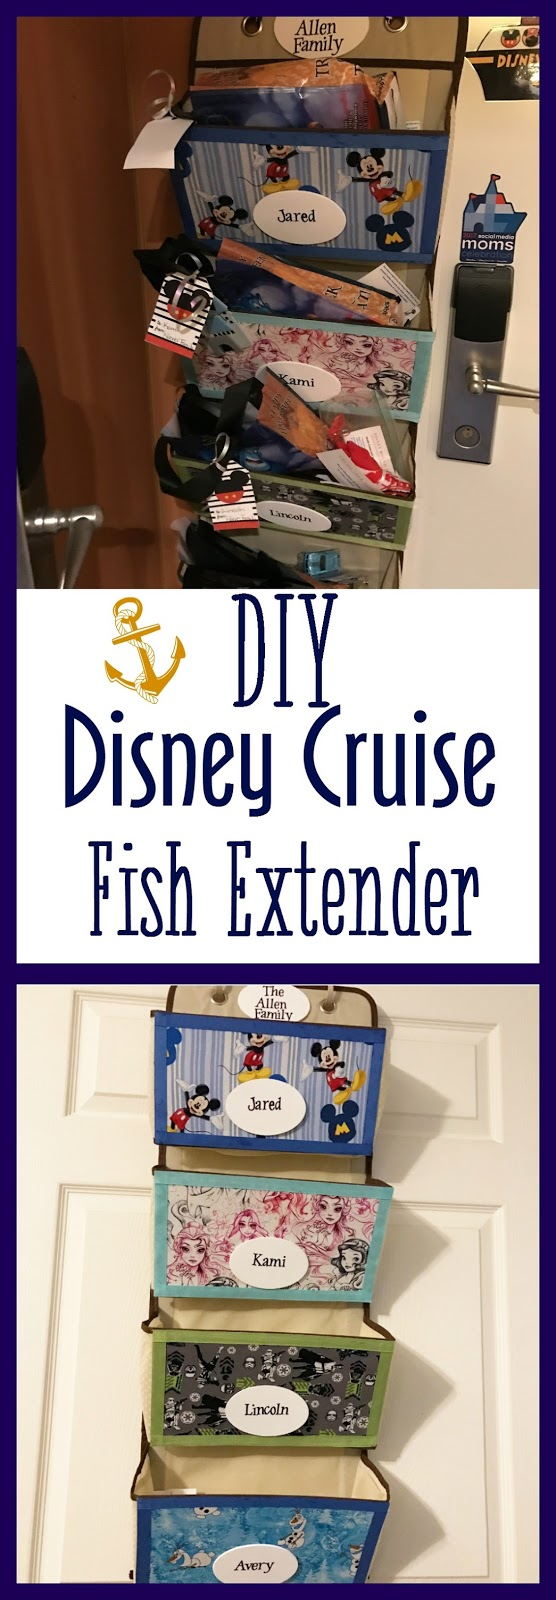 DIY Disney Cruise Fish Extender, Fish Extender tutorial, No Sew Fish Extender